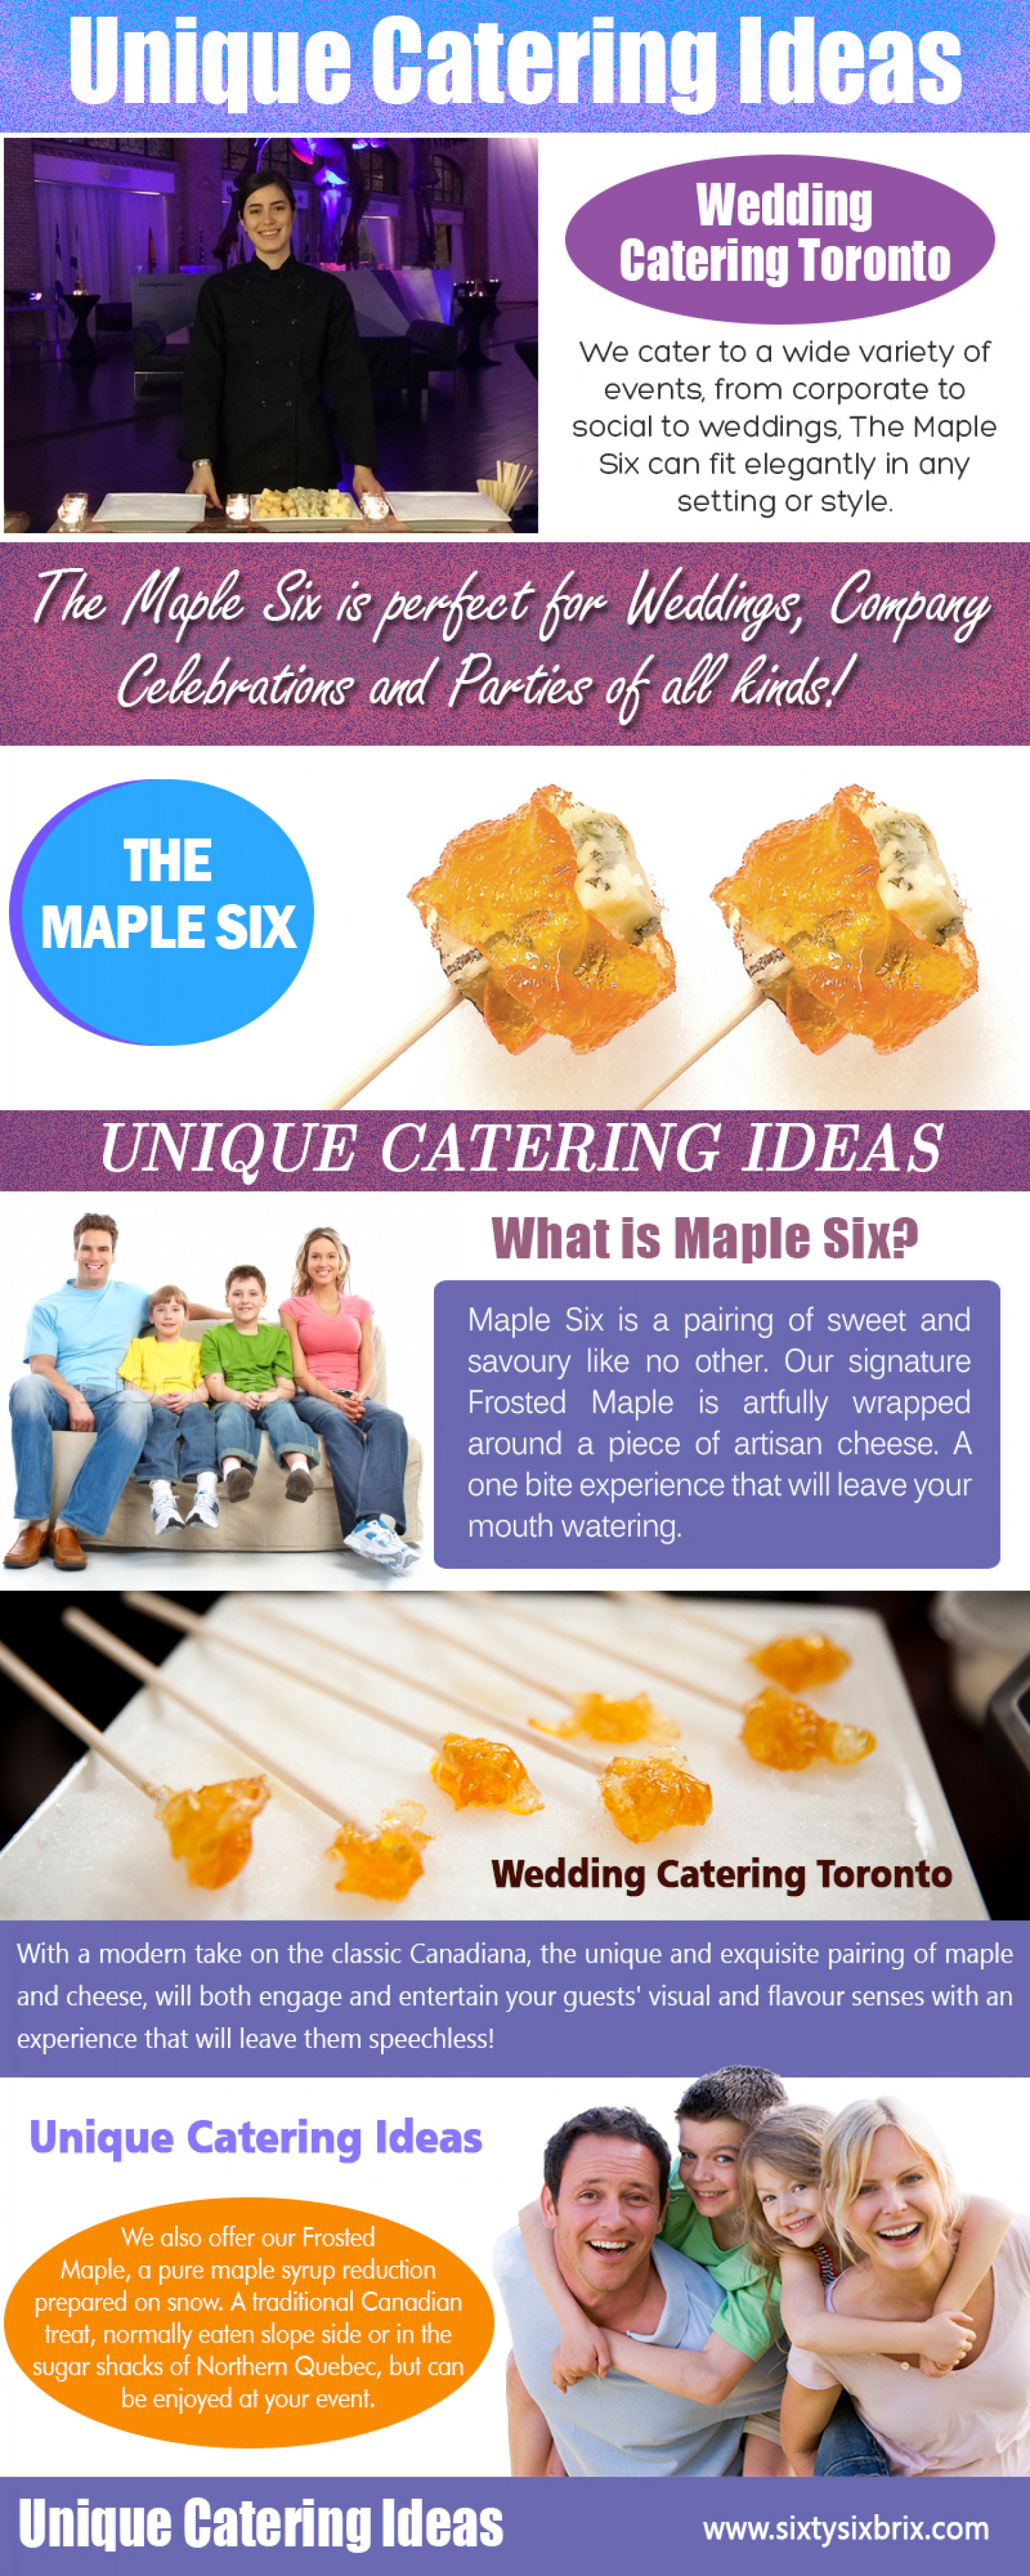 Unique Catering Ideas Infographic